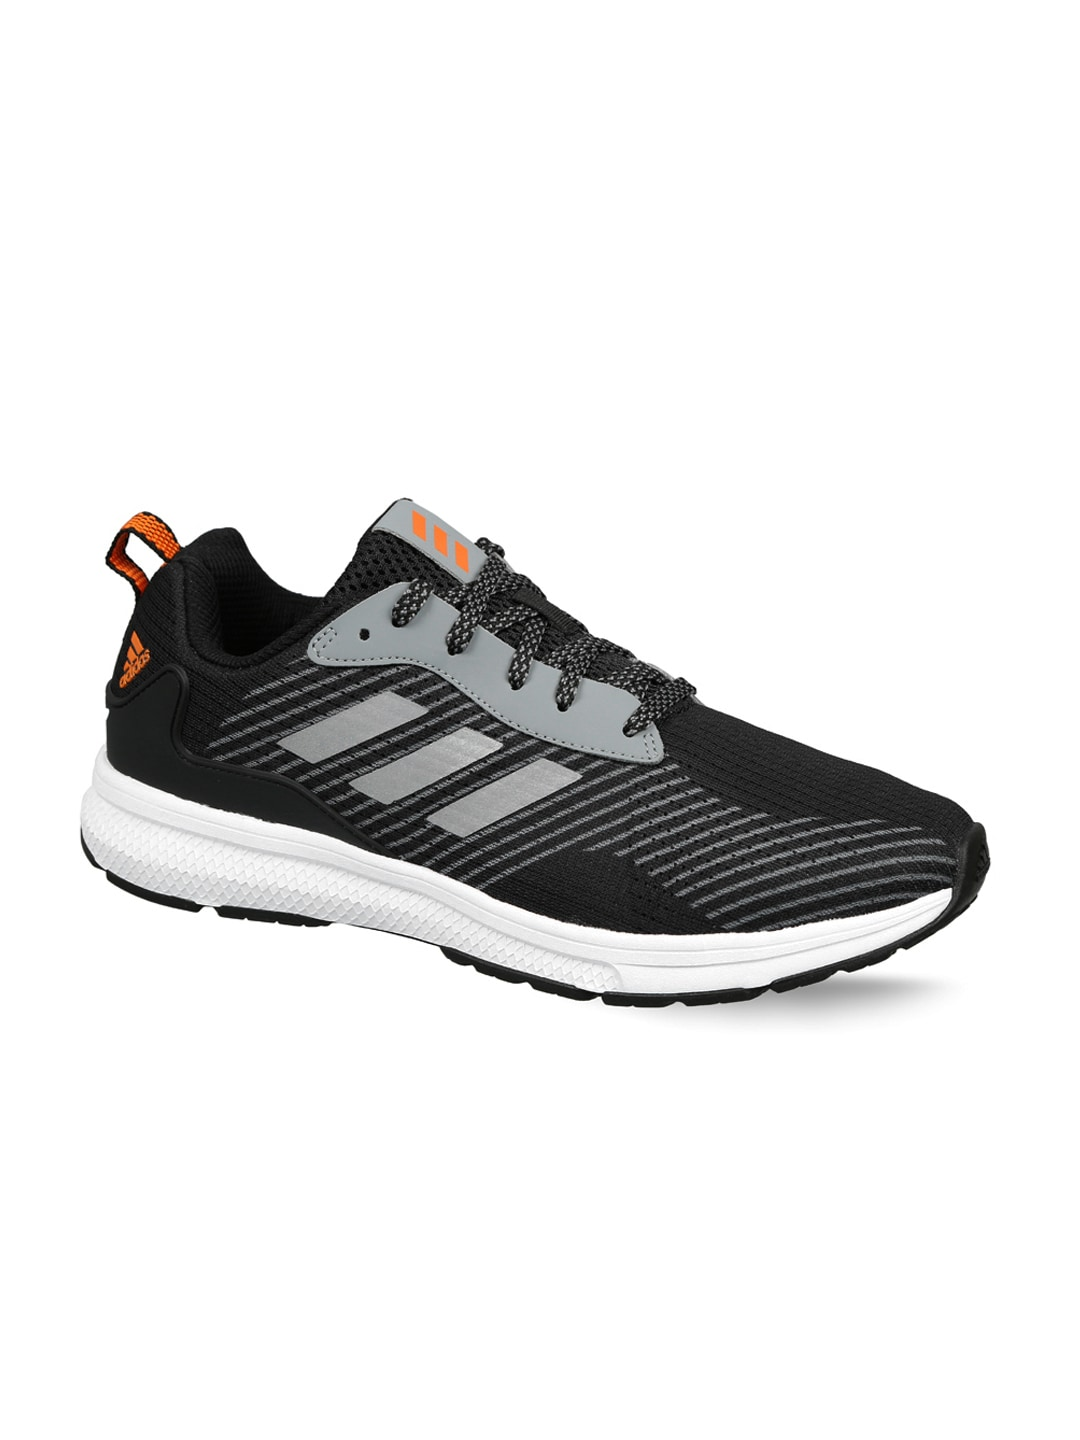 6f199e593db9 Adidas Shoes - Buy Adidas Shoes for Men   Women Online - Myntra